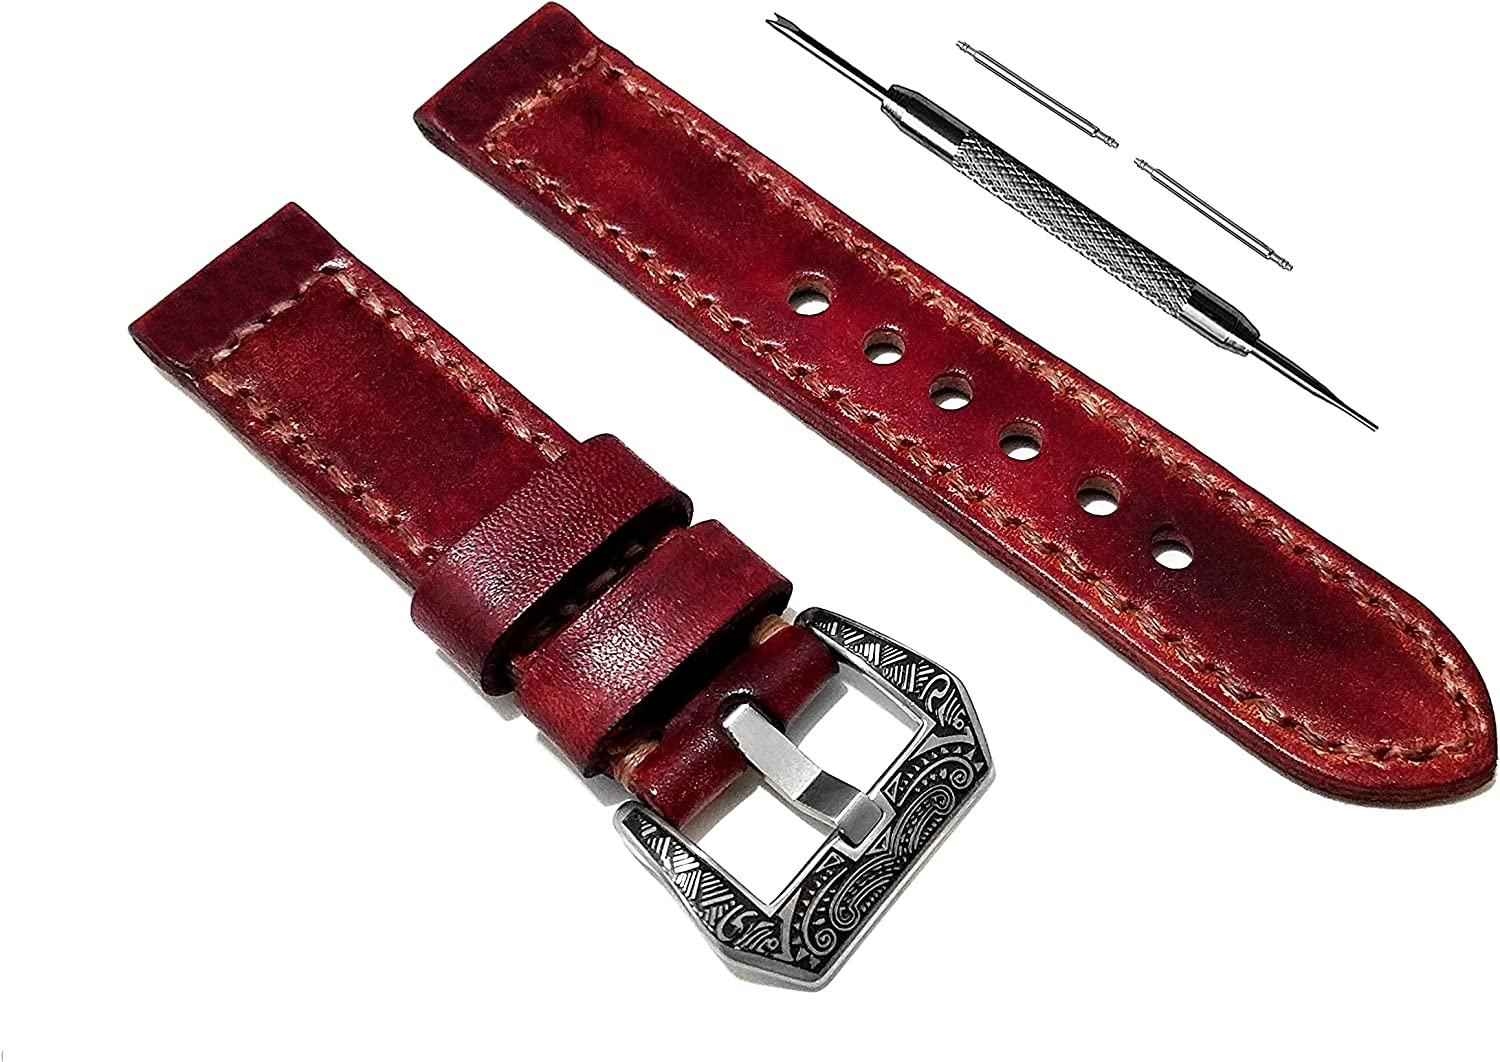 NICKSTON Burgundy Brushed Genuine Strap Compatible with Ranking TOP14 Max 71% OFF Leather